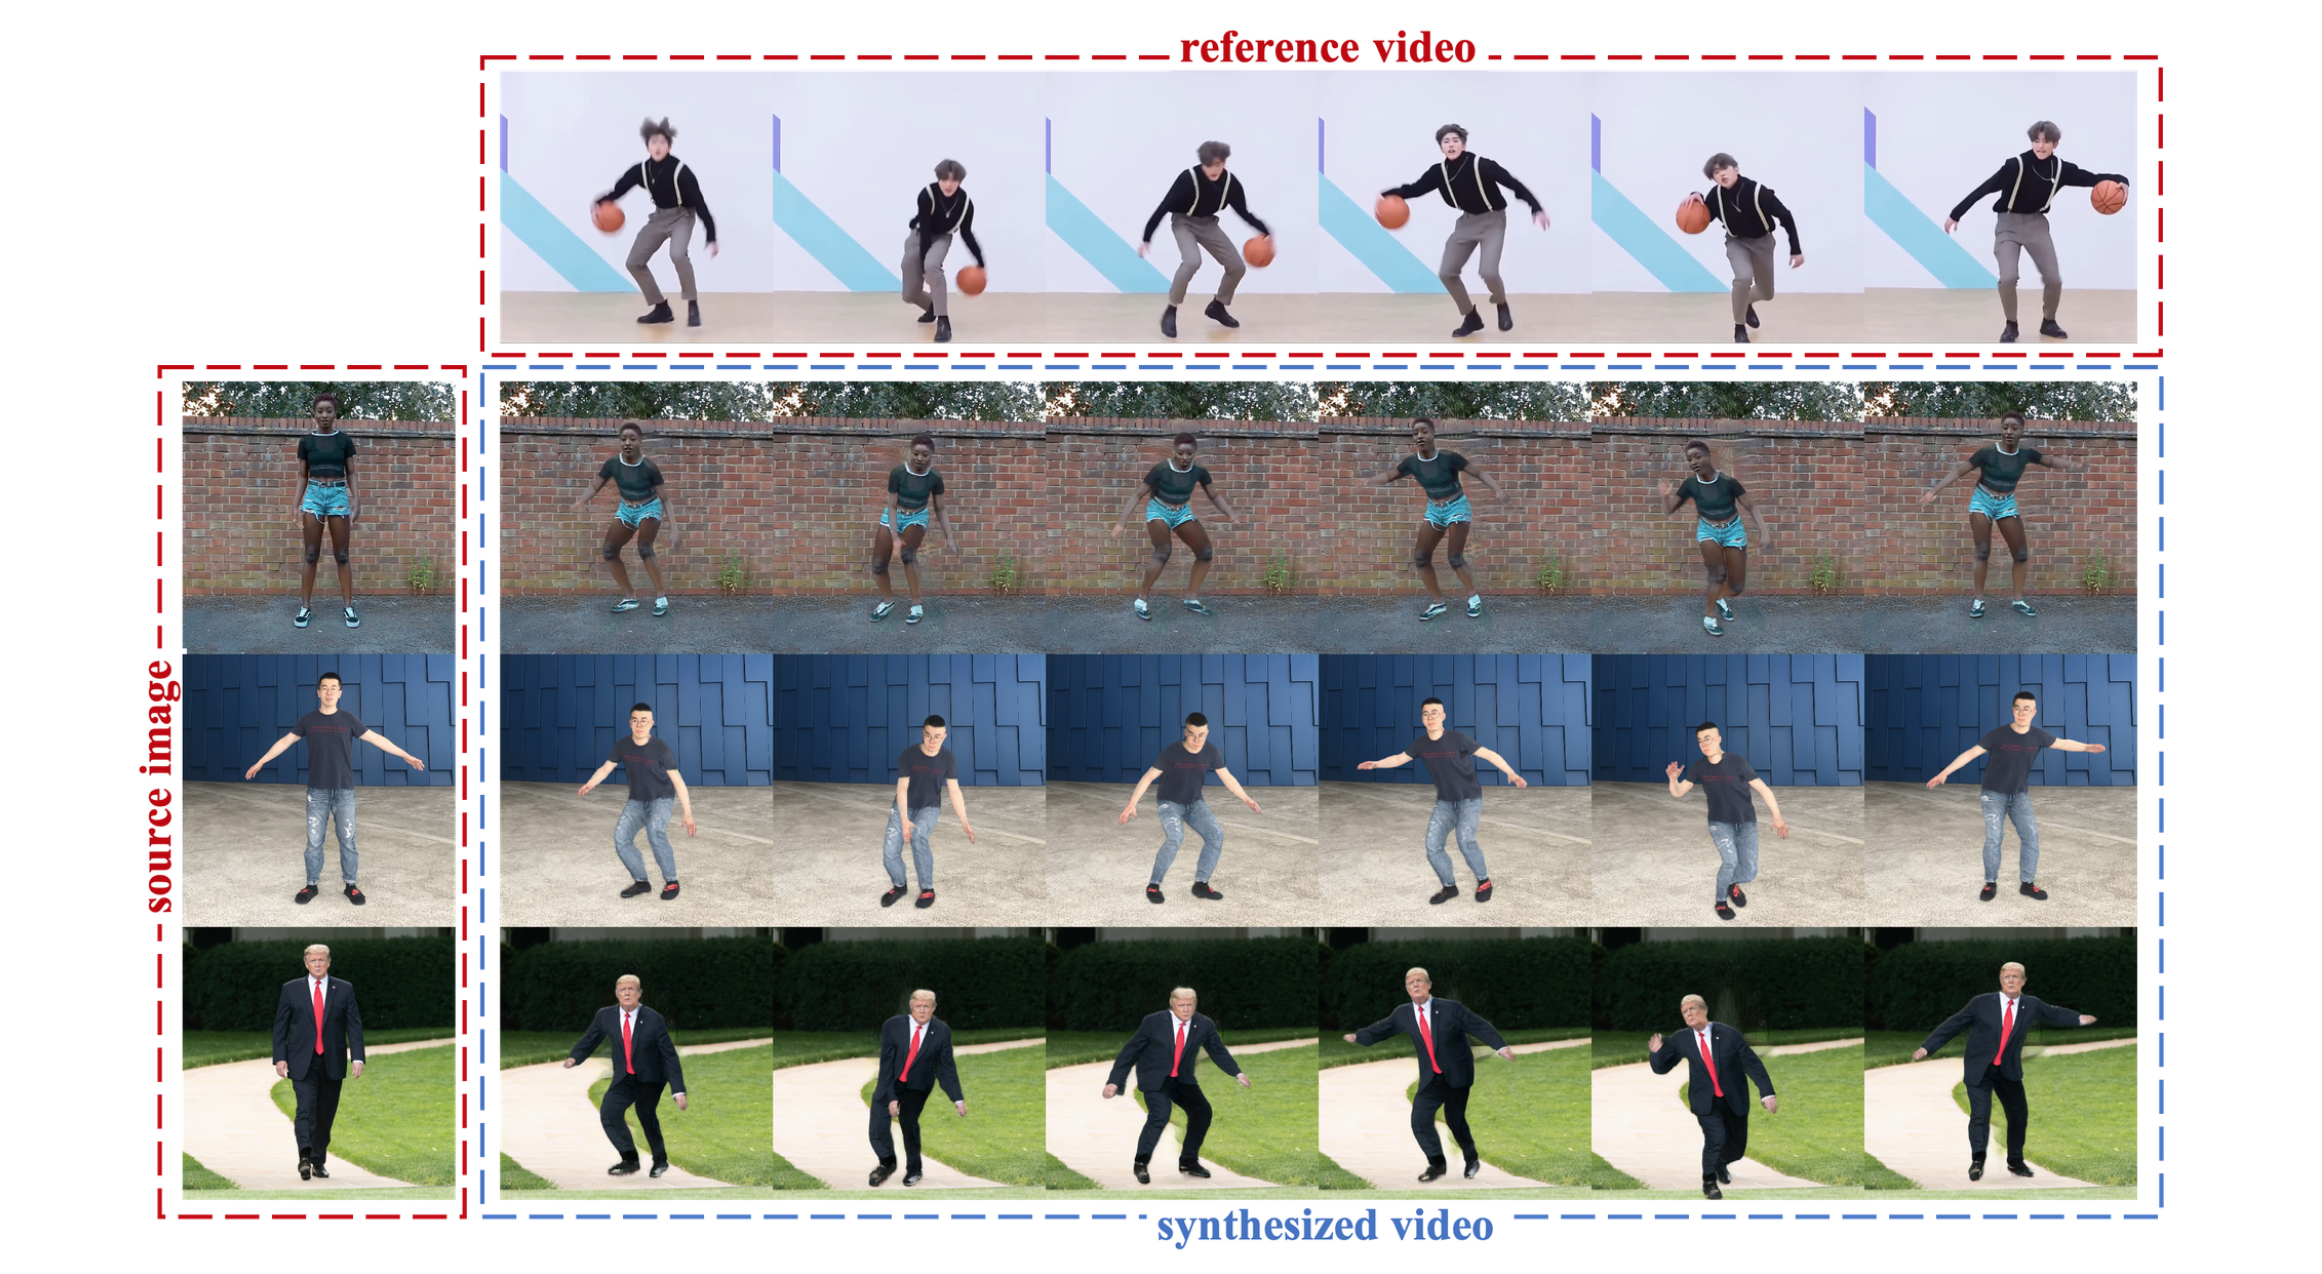 Impersonator++ Human Image Synthesis—Smarten Up Your Dance Moves!